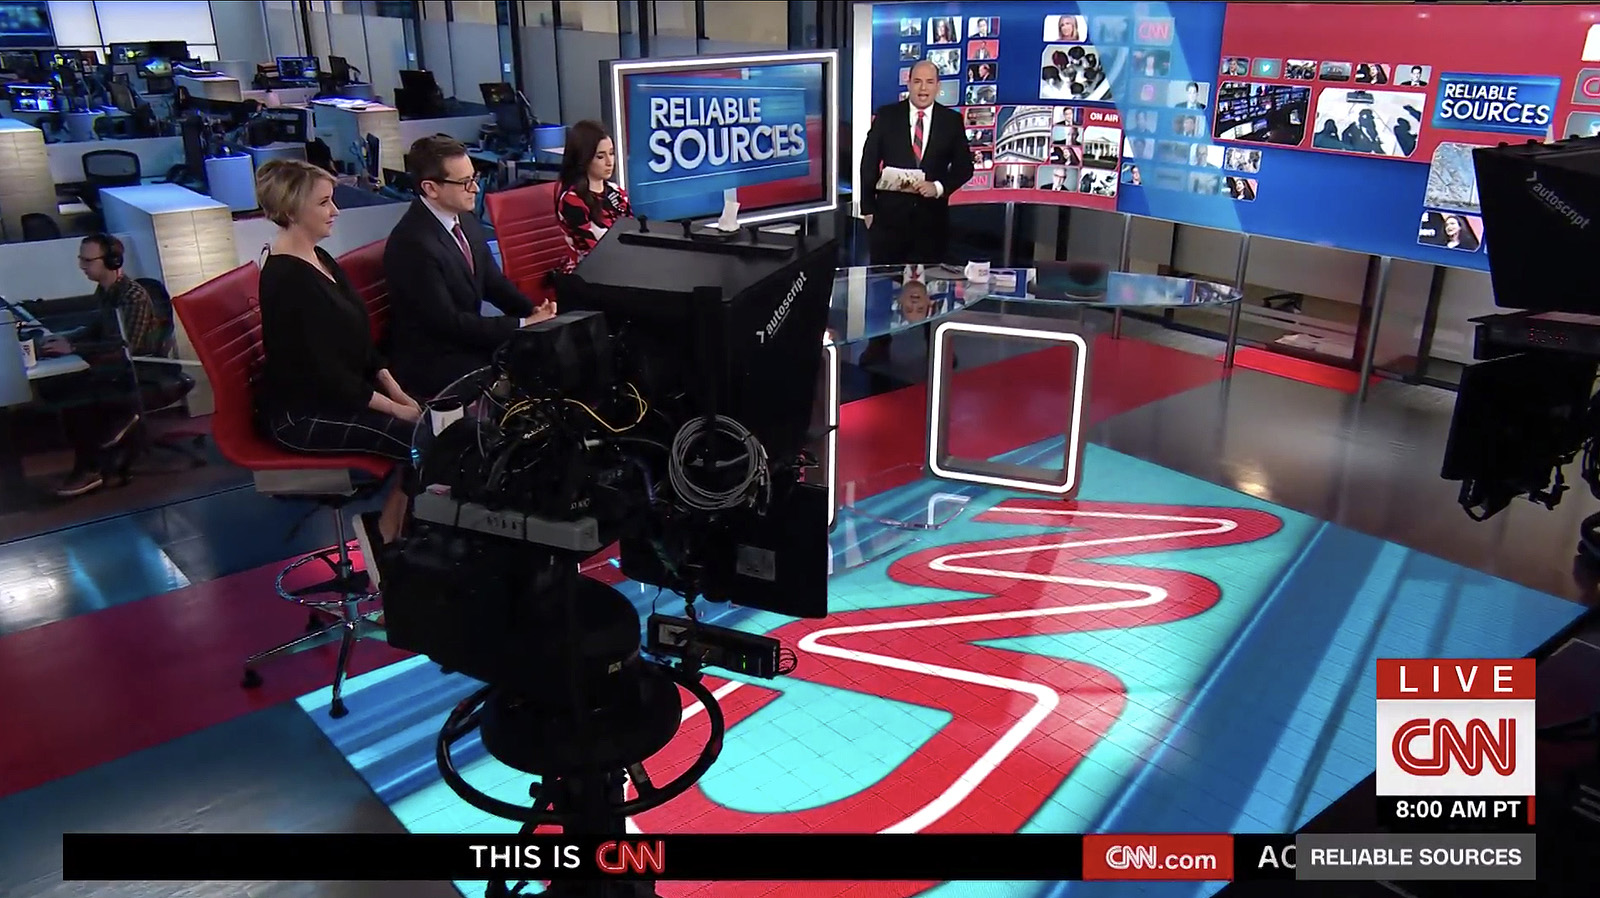 NCS_CNN-Studio-17n-2019_0045